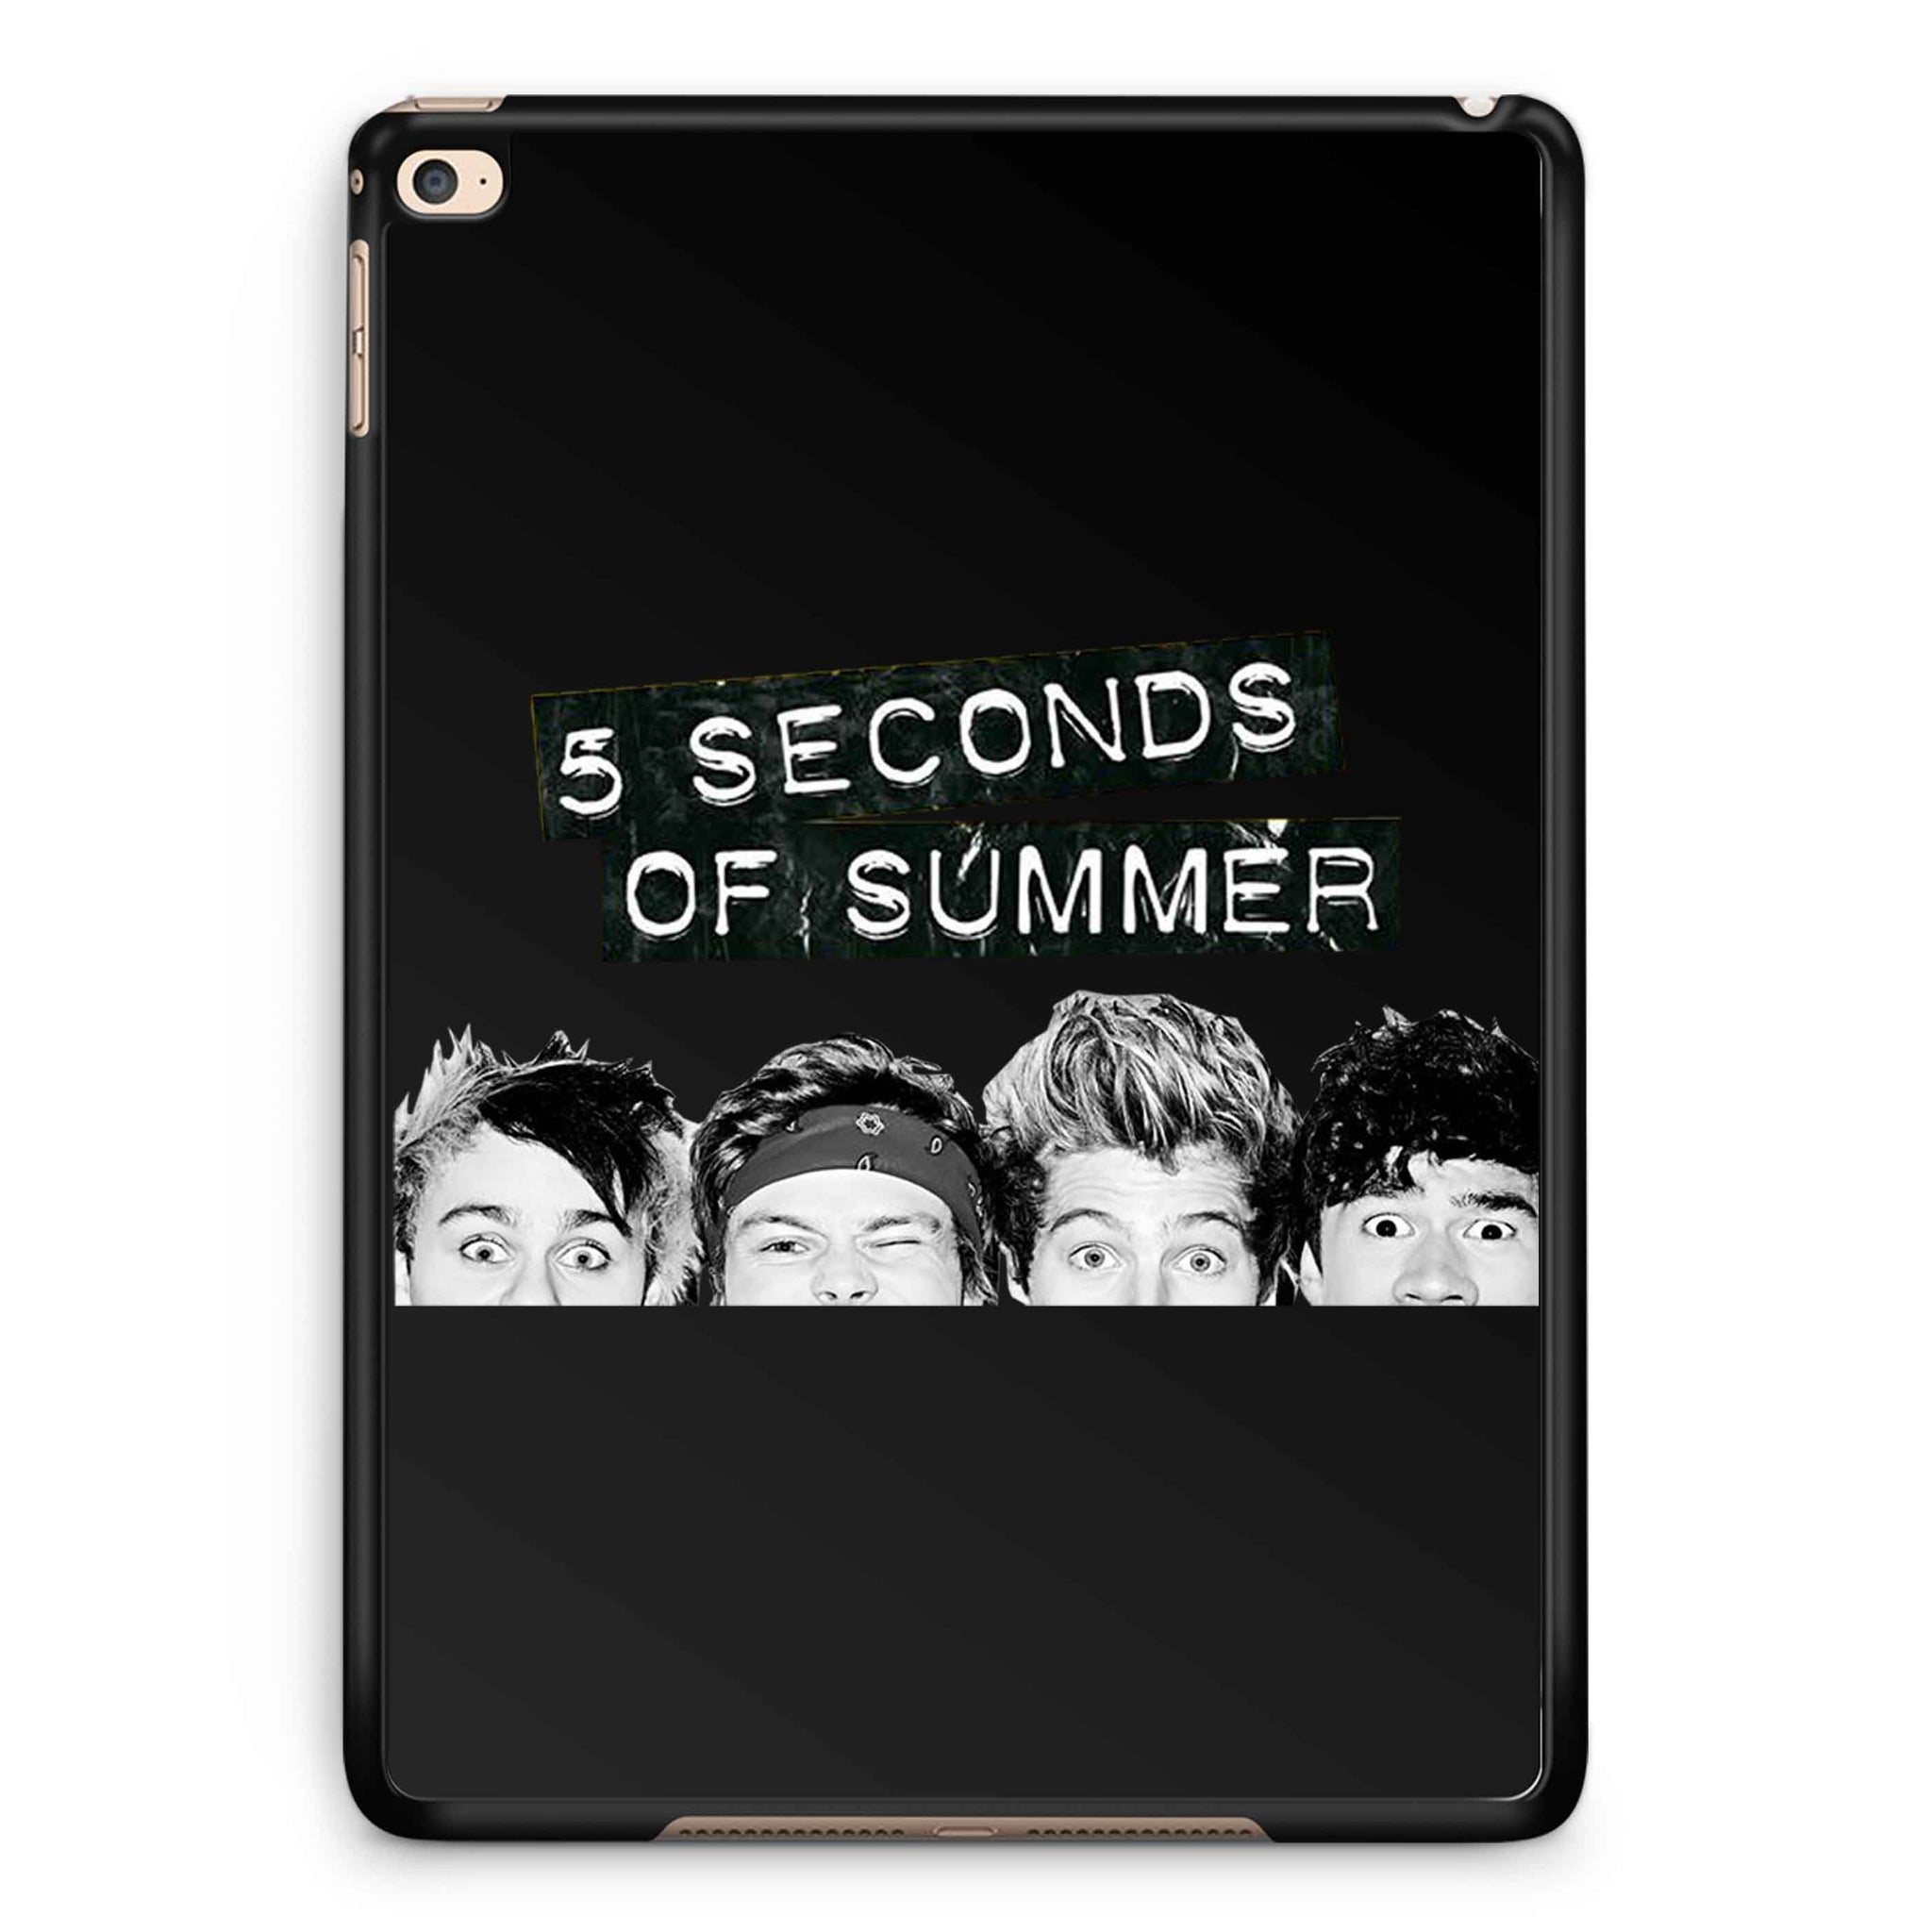 5 Second Of Summer Eyes iPad 2 / 3 / 4 / 5 / 6| iPad Air / Air 2 | iPad Mini 1 / 2 / 3 / 4 | iPad Pro Case